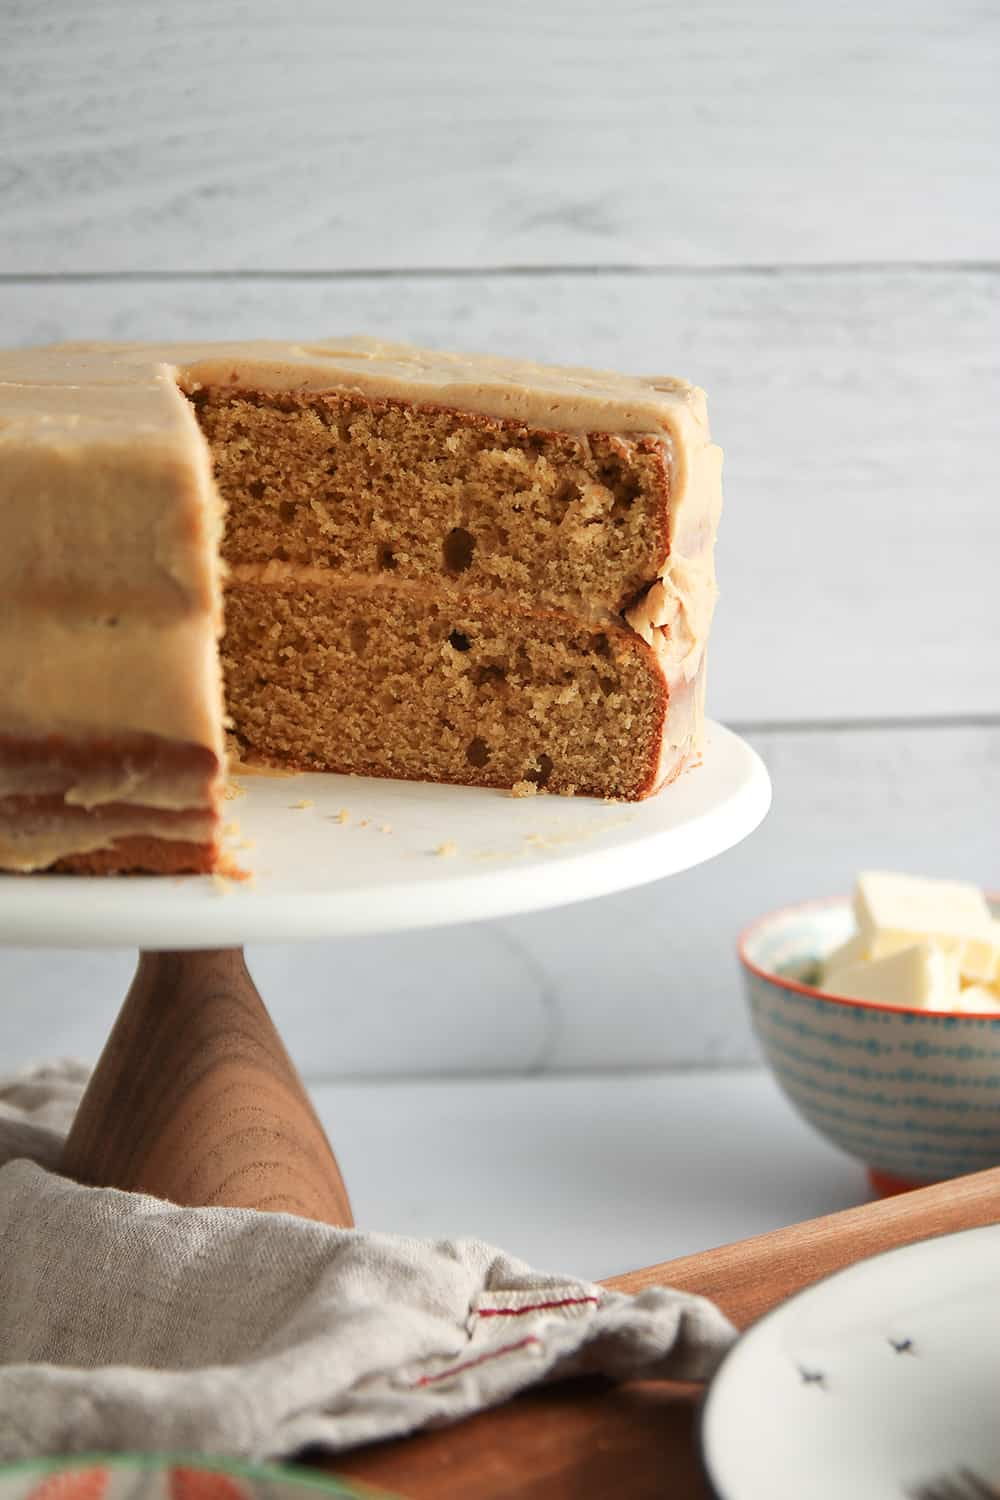 Layers of Peanut Butter Cake are frosted with peanut butter cream cheese frosting for a very peanut buttery dessert!